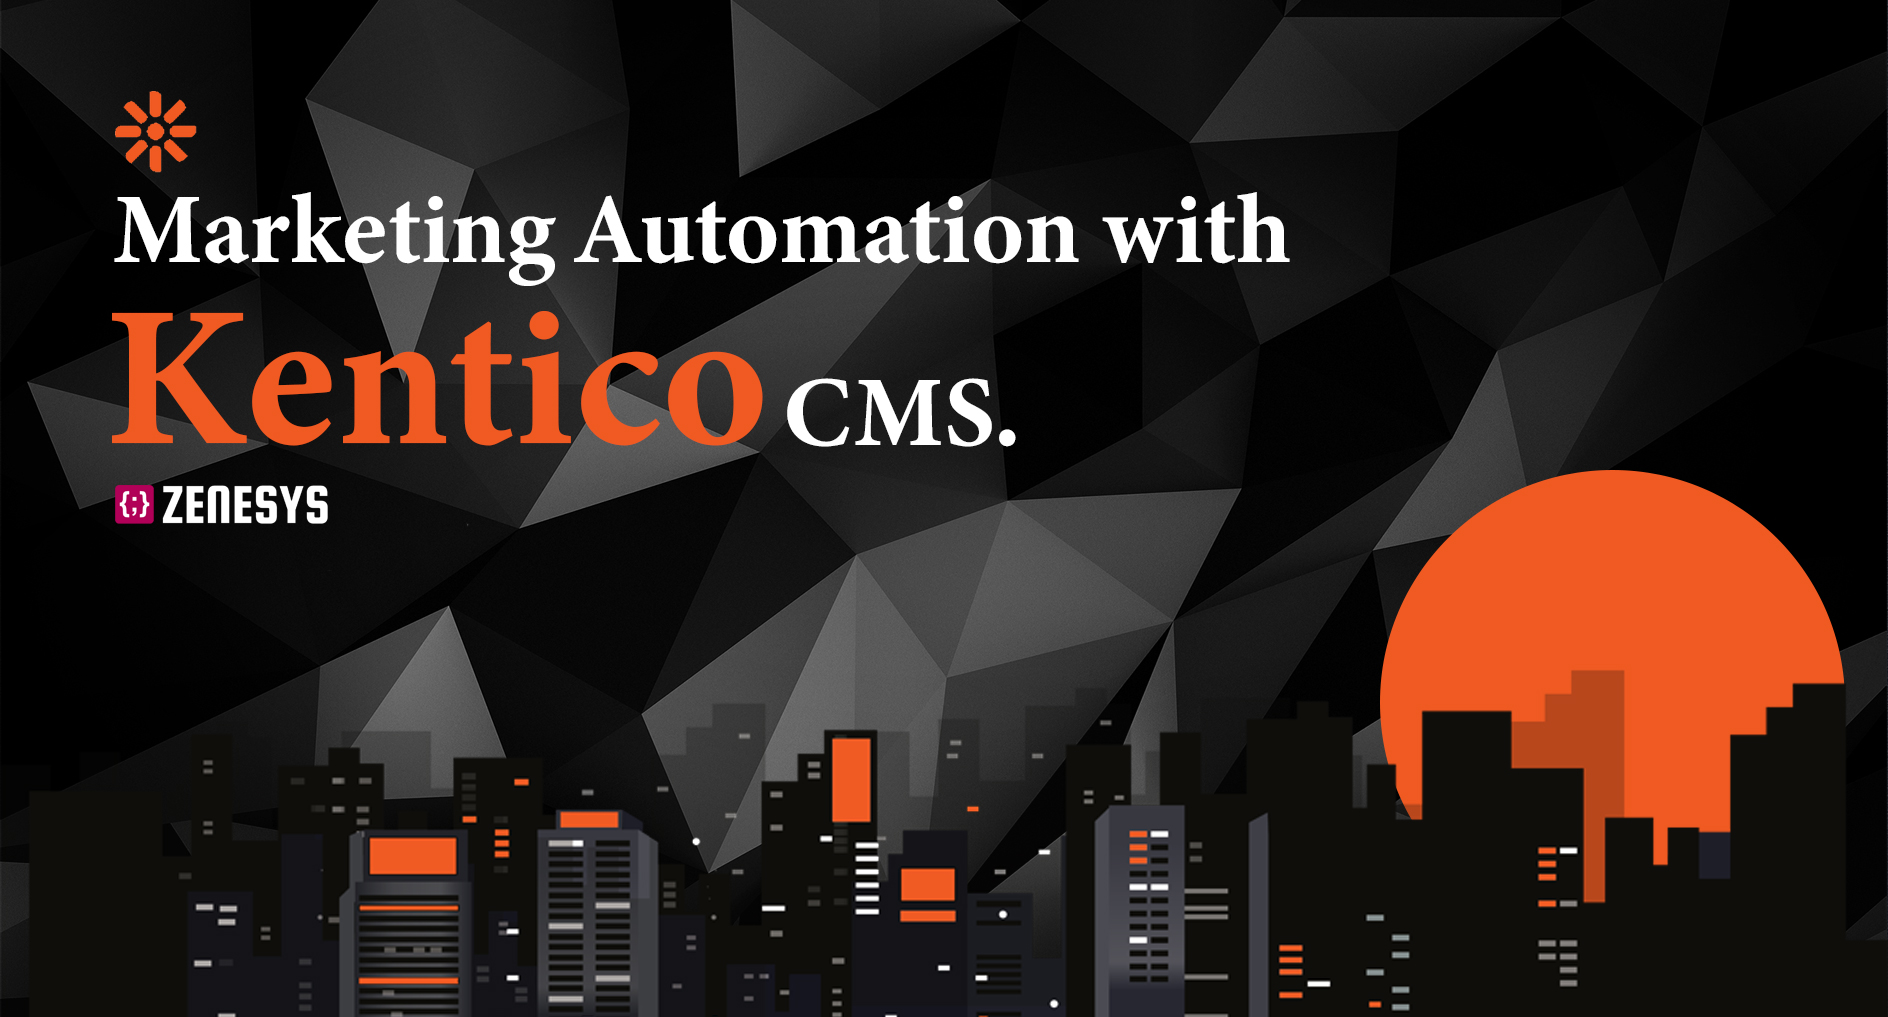 Marketing Automation with Kentico CMS